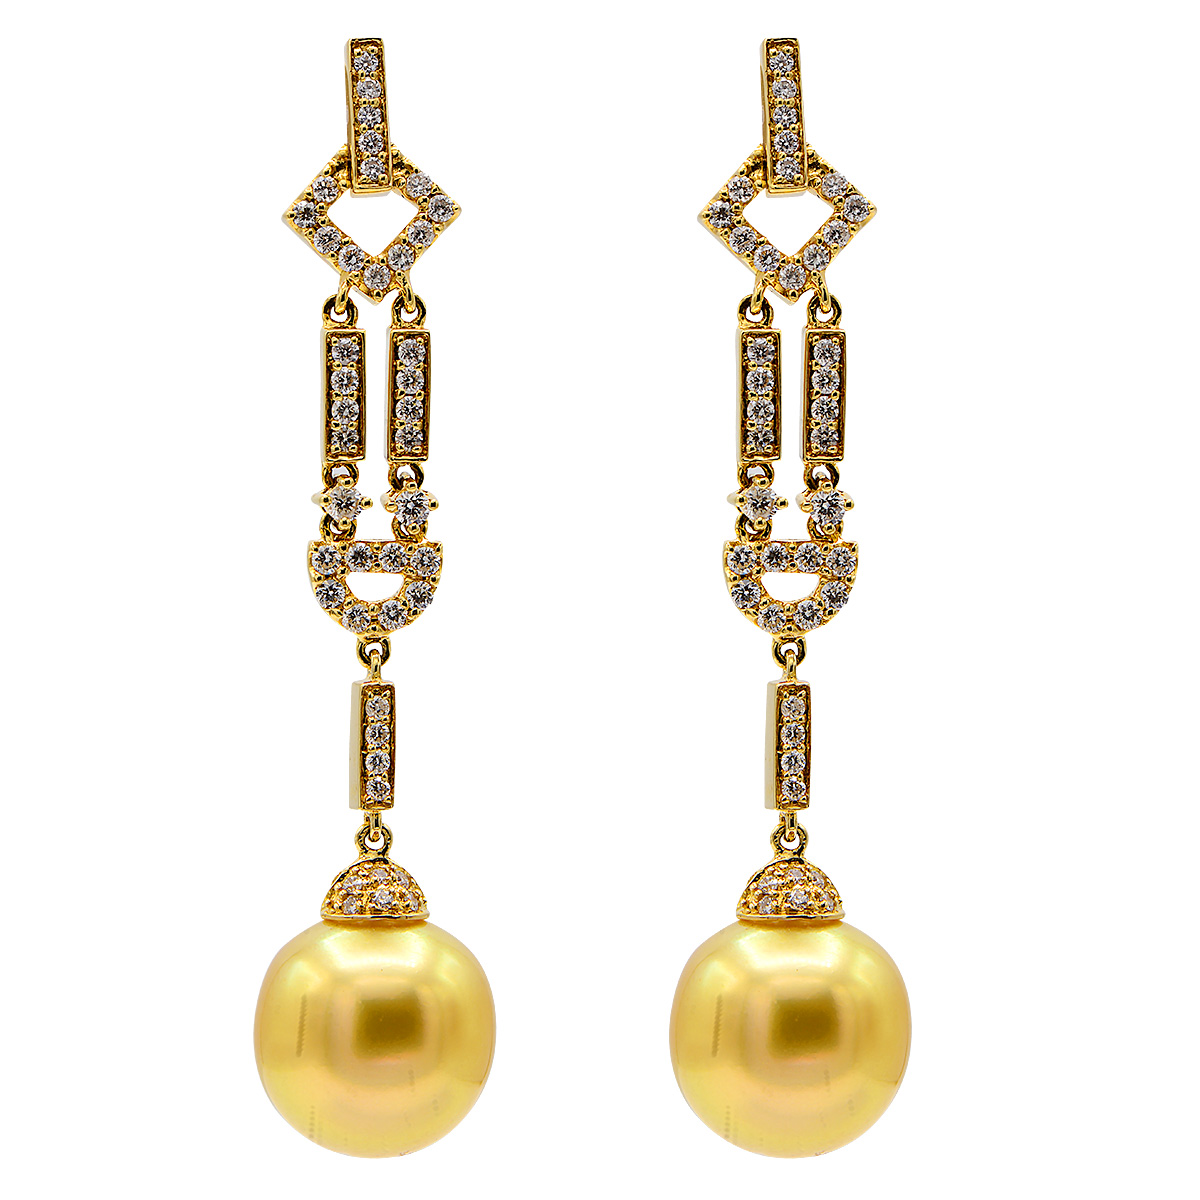 18KY GOLDEN SOUTH SEA PEARL EARRINGS, 12-13MM